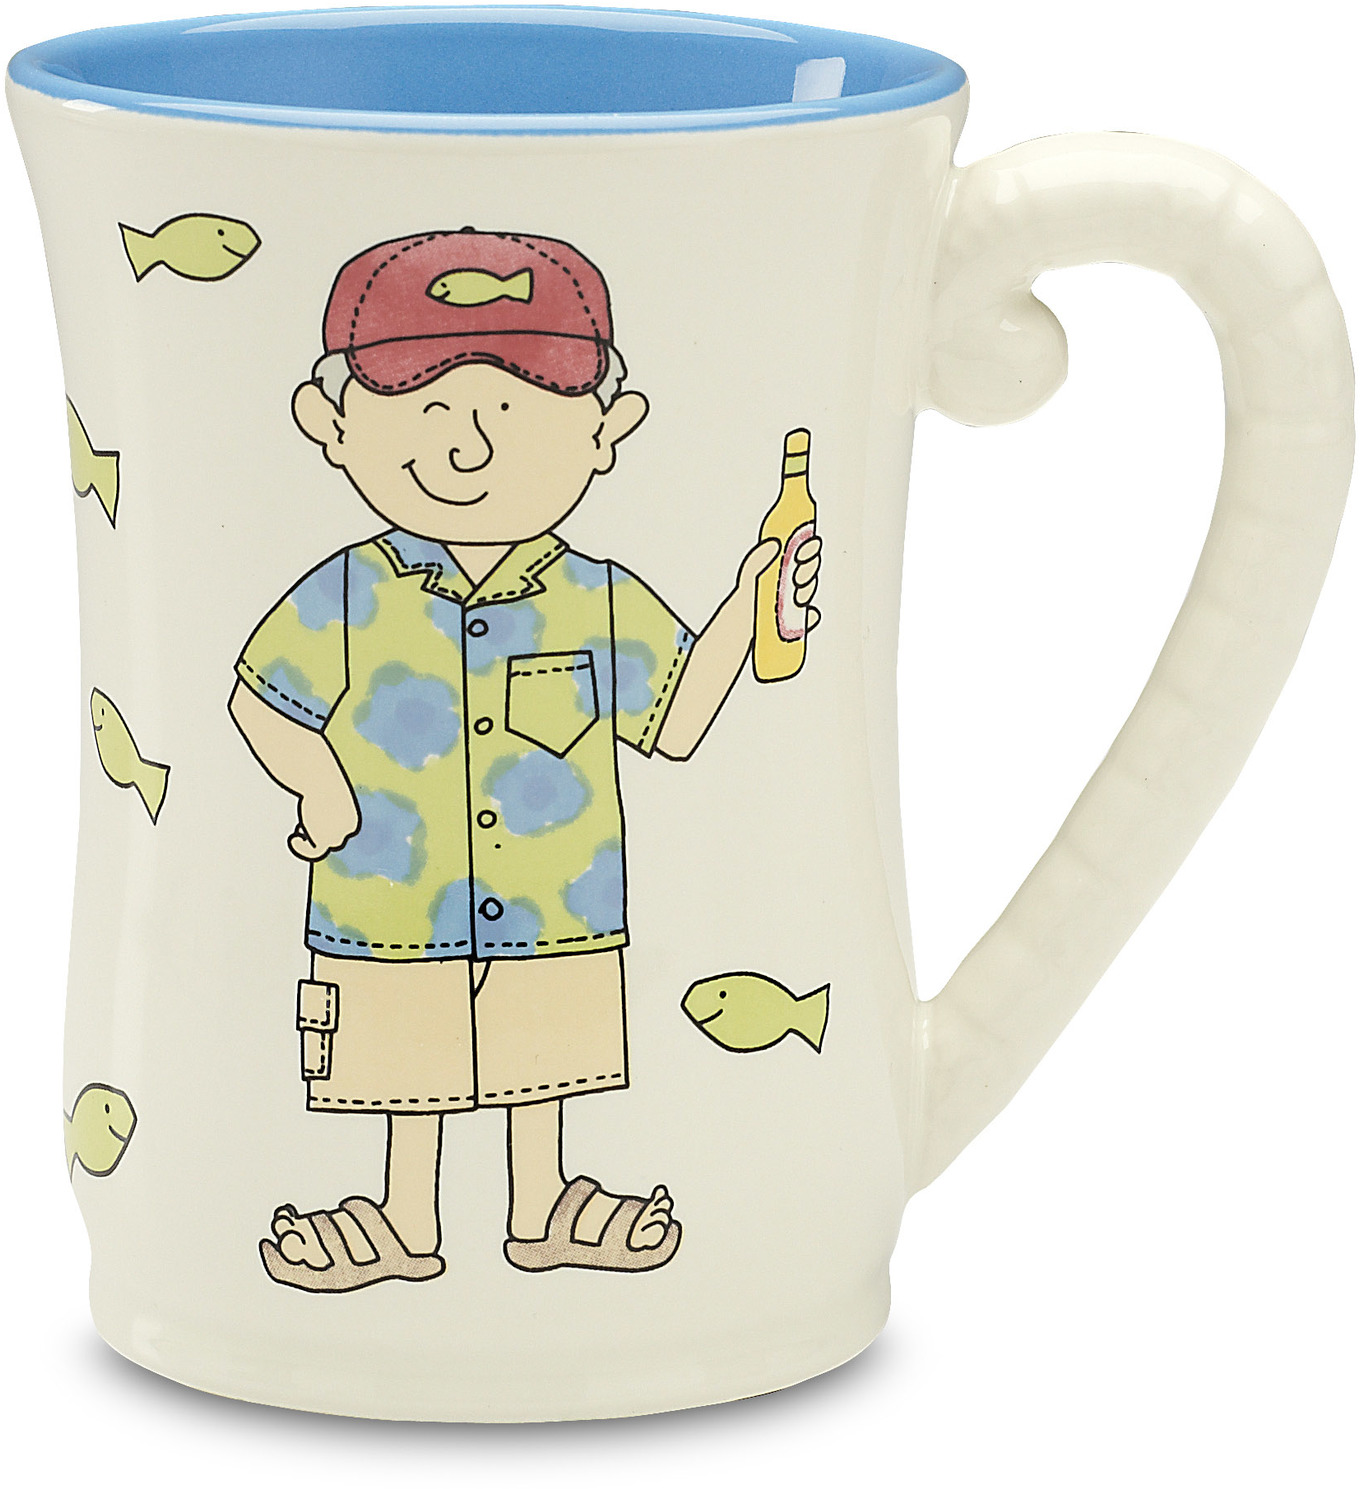 Well Seasoned The Retirement Plan Blue Ceramic Coffee Mug - Grandpa